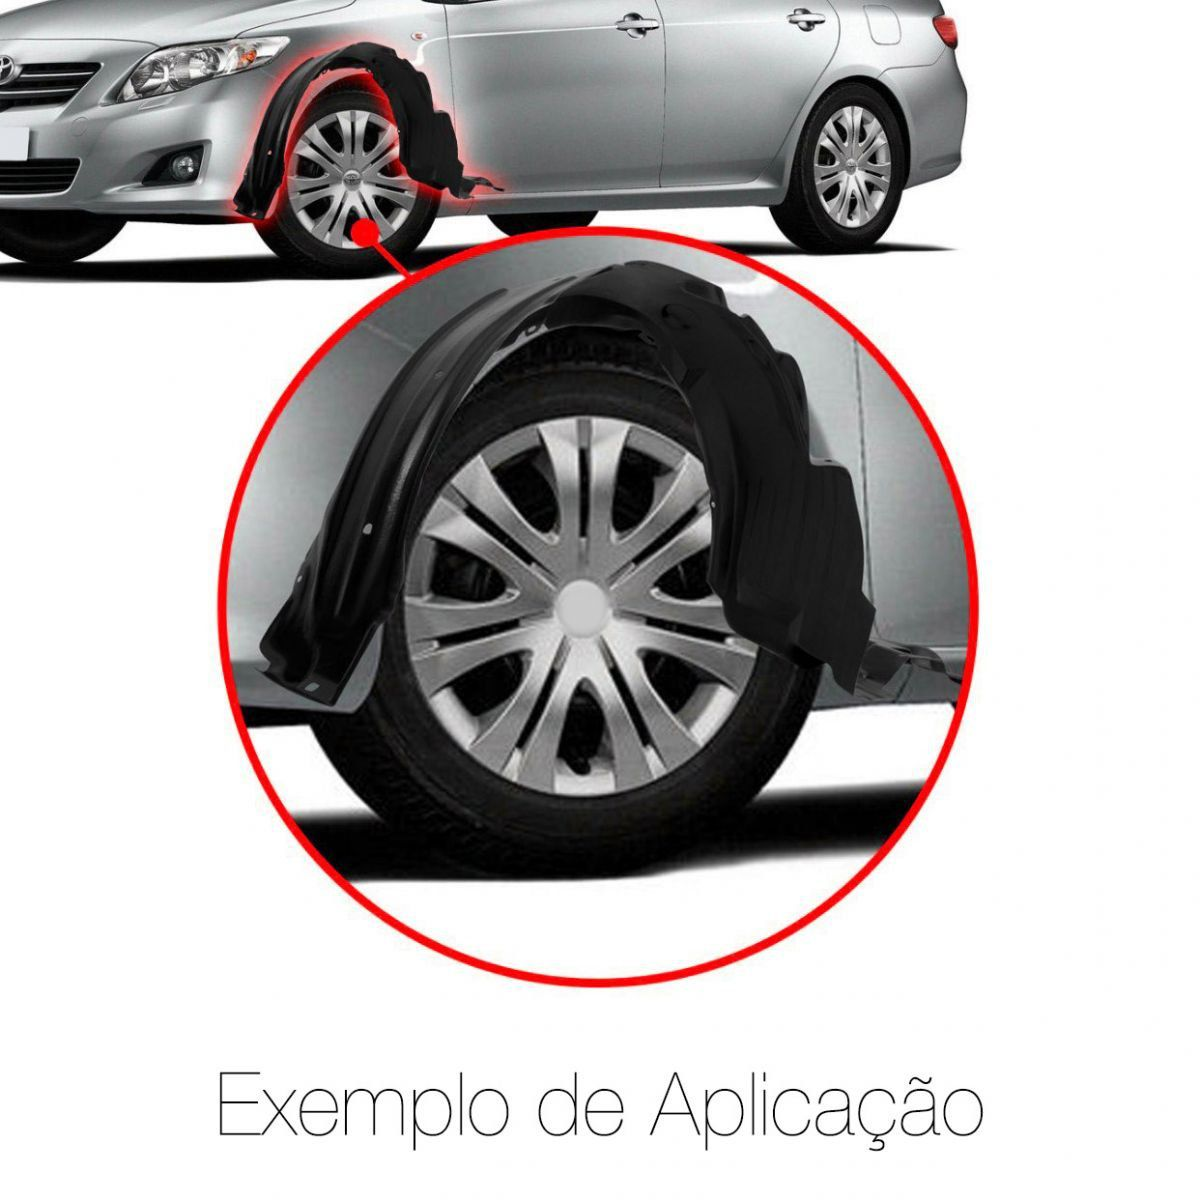 Parabarro New Civic 2011 2012 2013 2014